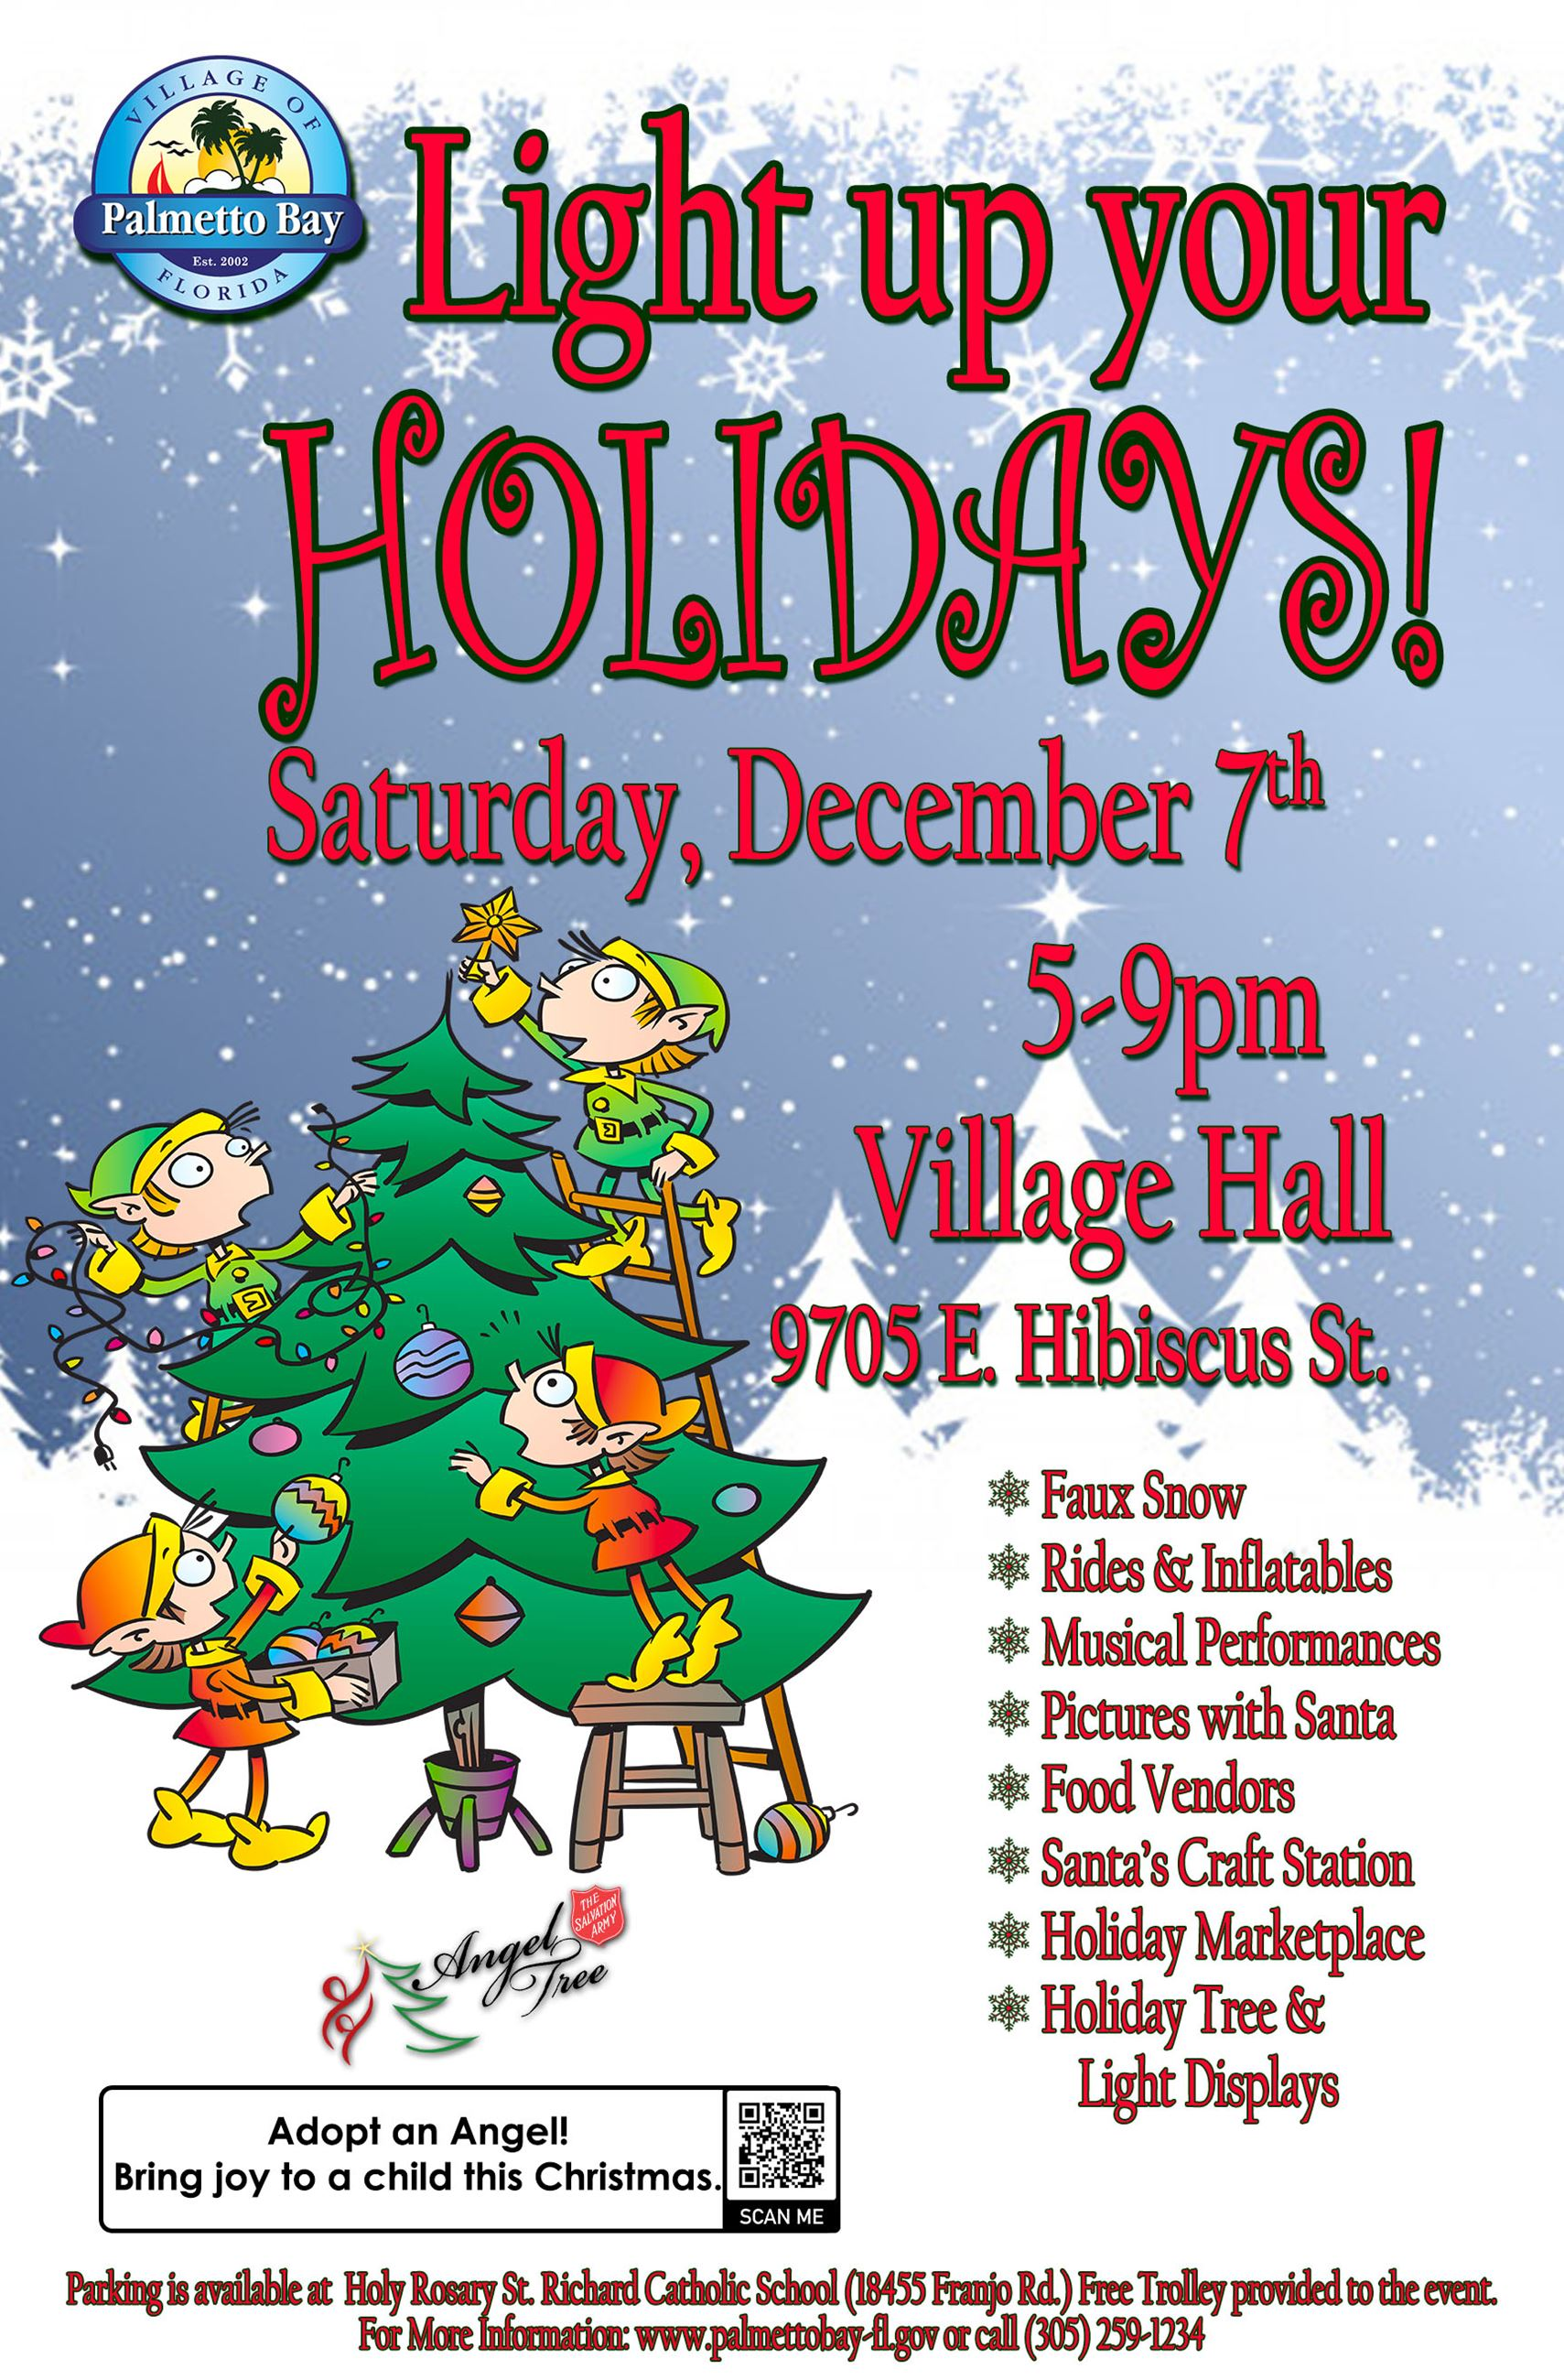 Light up your Holidays! Saturday, December 7th from 5 -9 PM at Village Hall 9705 East Hibiscus Stree